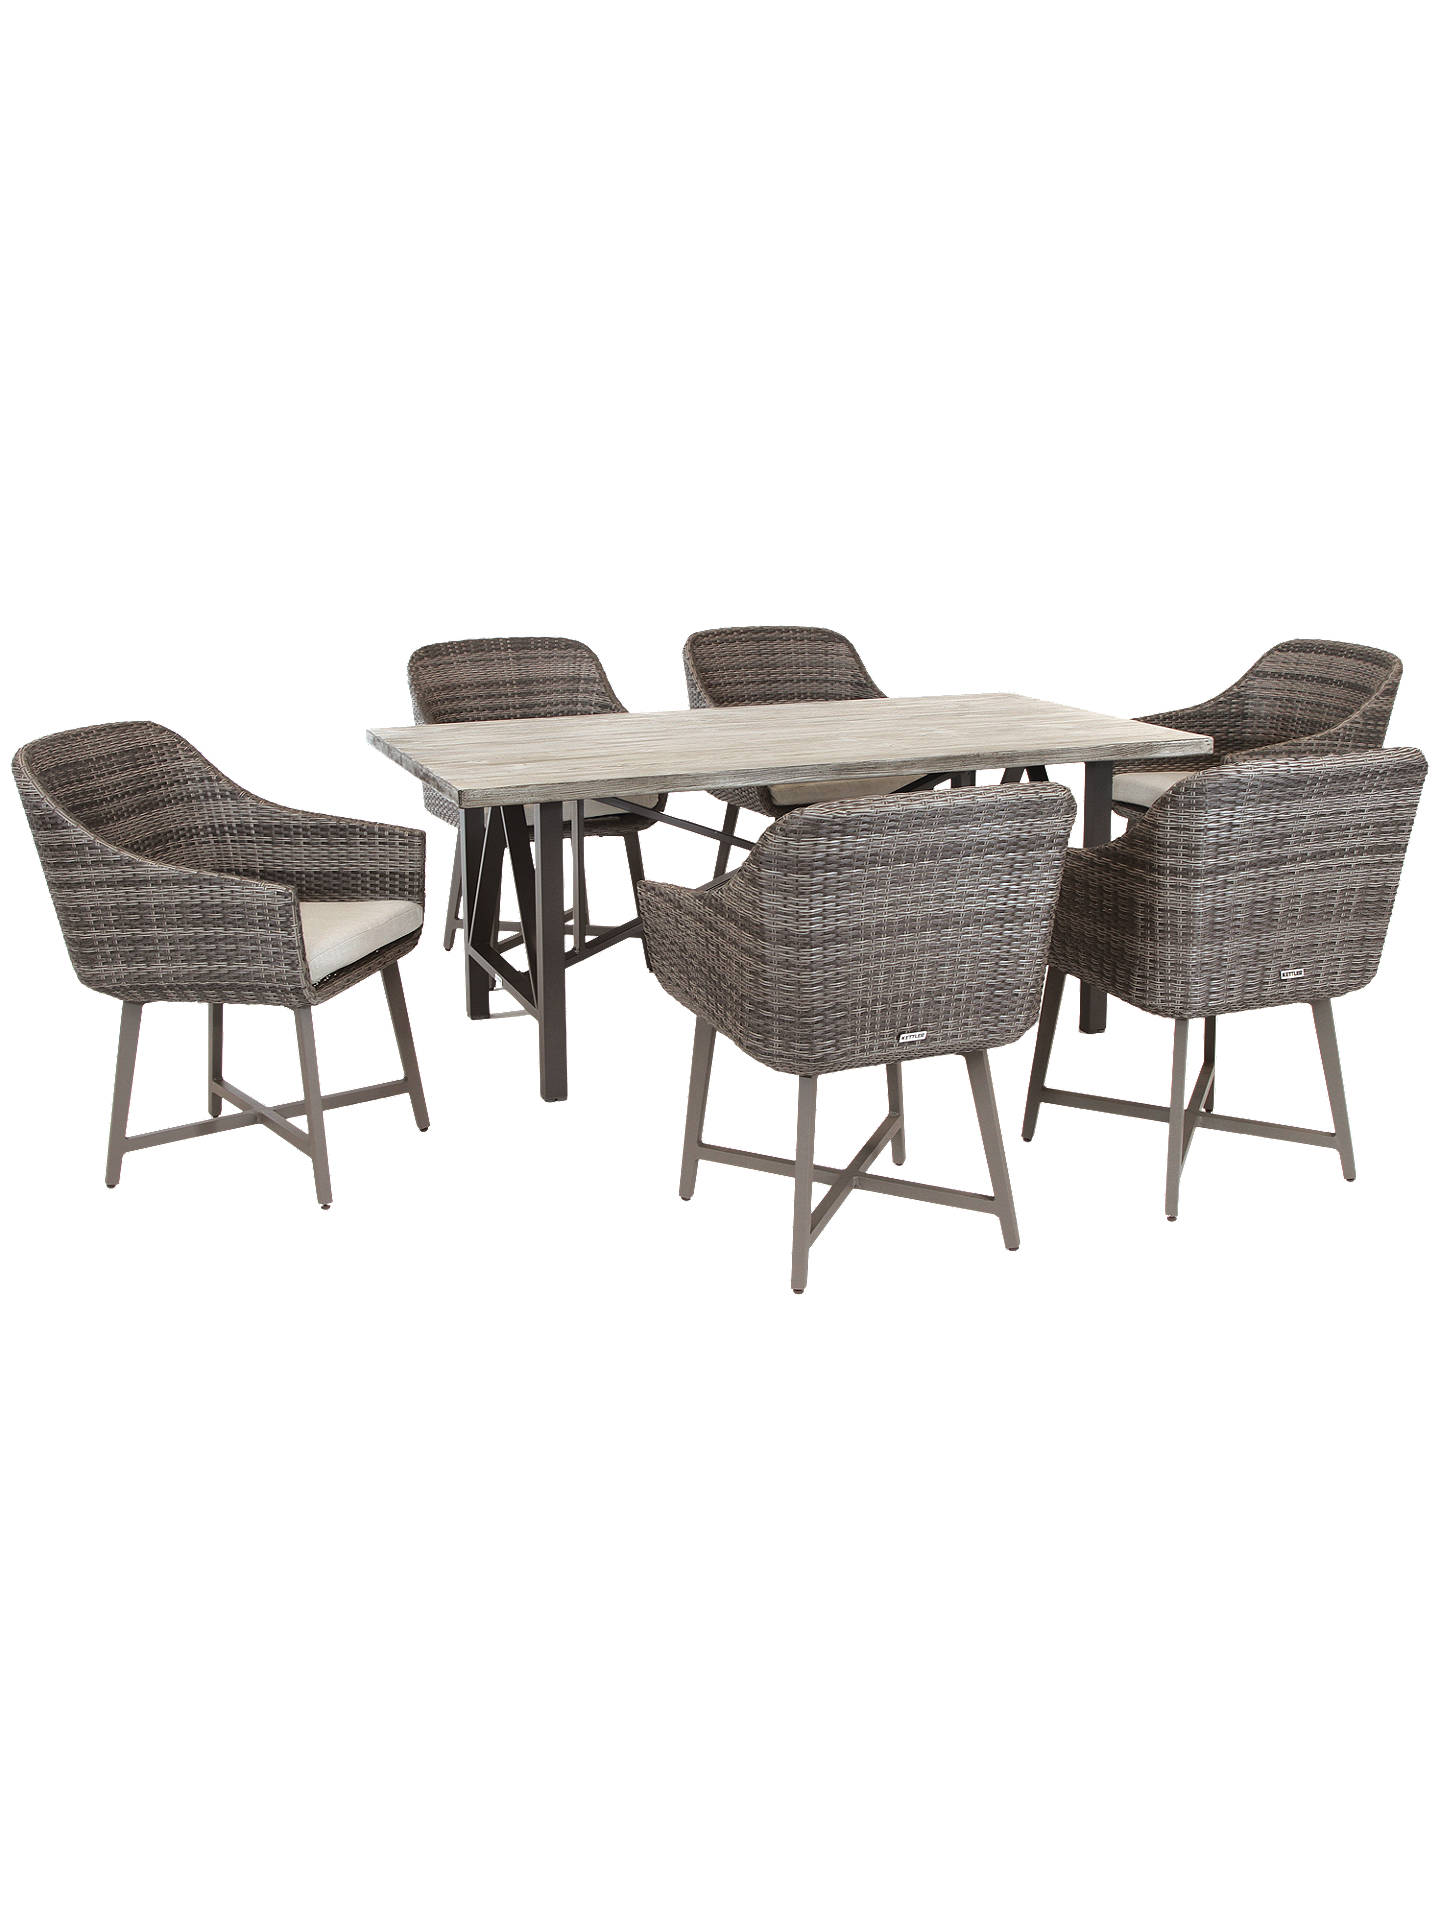 76f928ba4abb Buy KETTLER LaMode 6 Seater Garden Dining Table and Chairs Set, Olive Grey  Online at ...